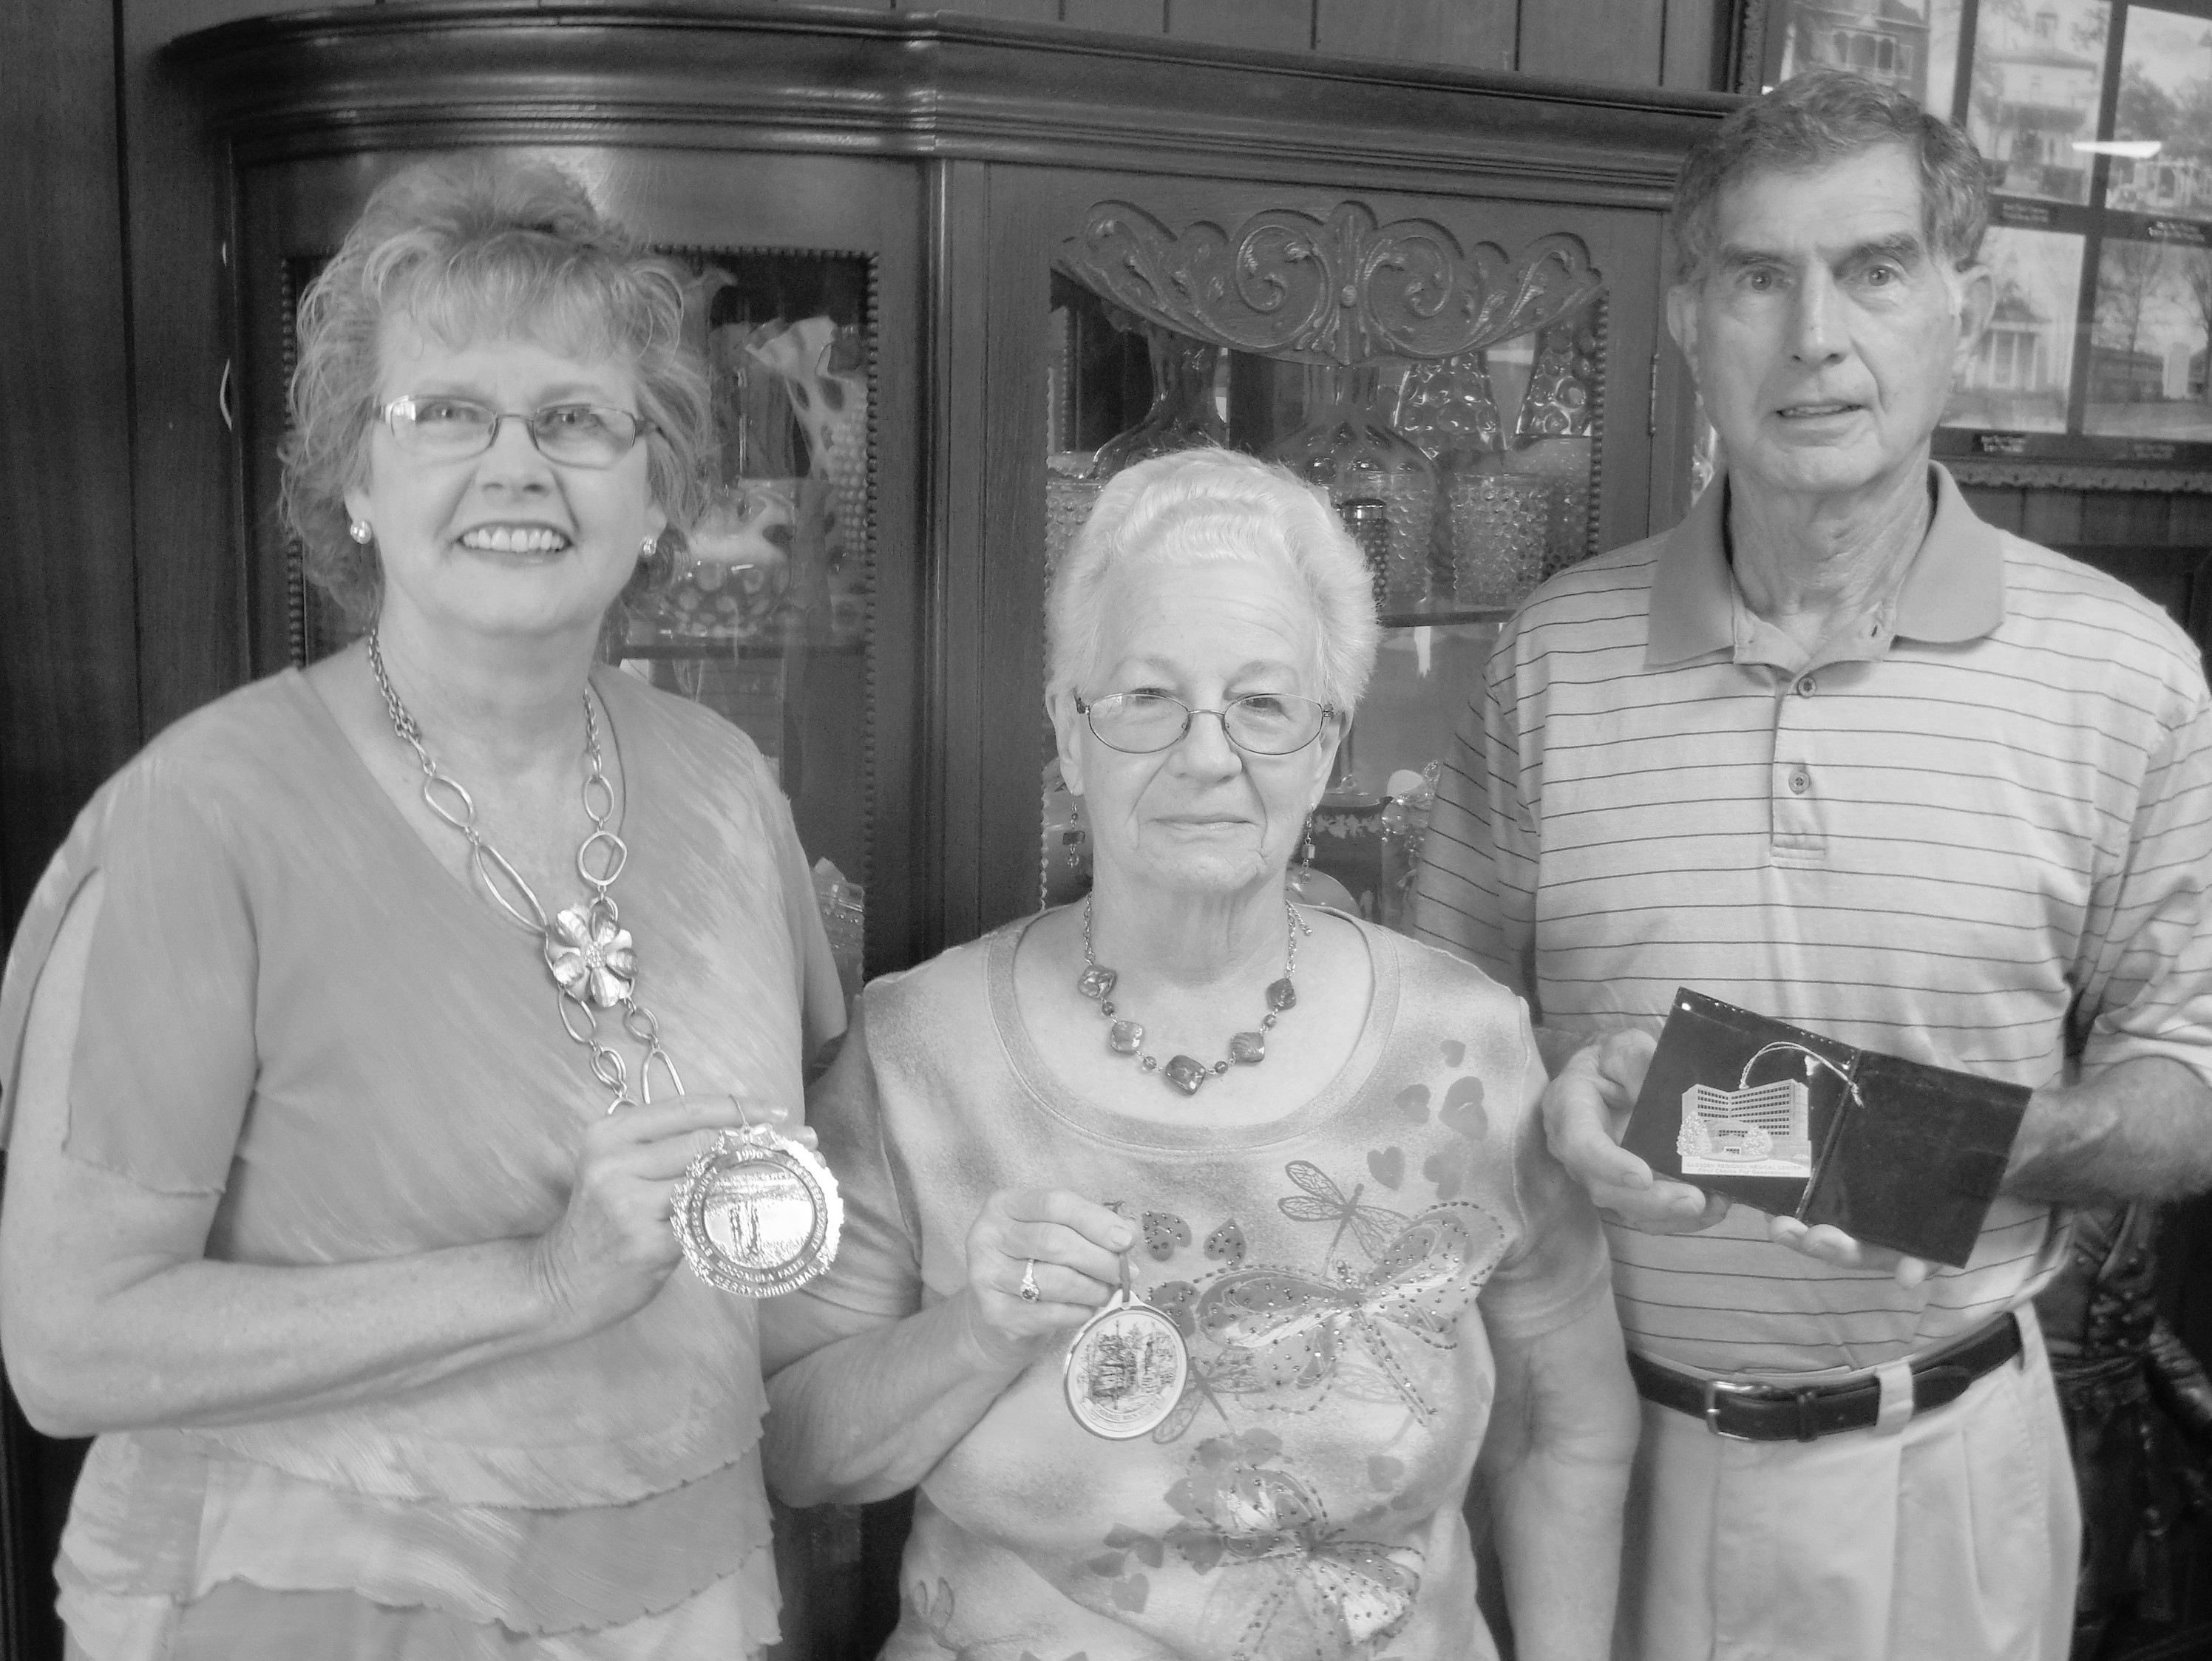 From left, Historical Society member Pam Dean, museum committee member Margaret Hudson, and Historical Society member Max Pate hold ornaments which will be similar to those sold during the Blount County Fair.